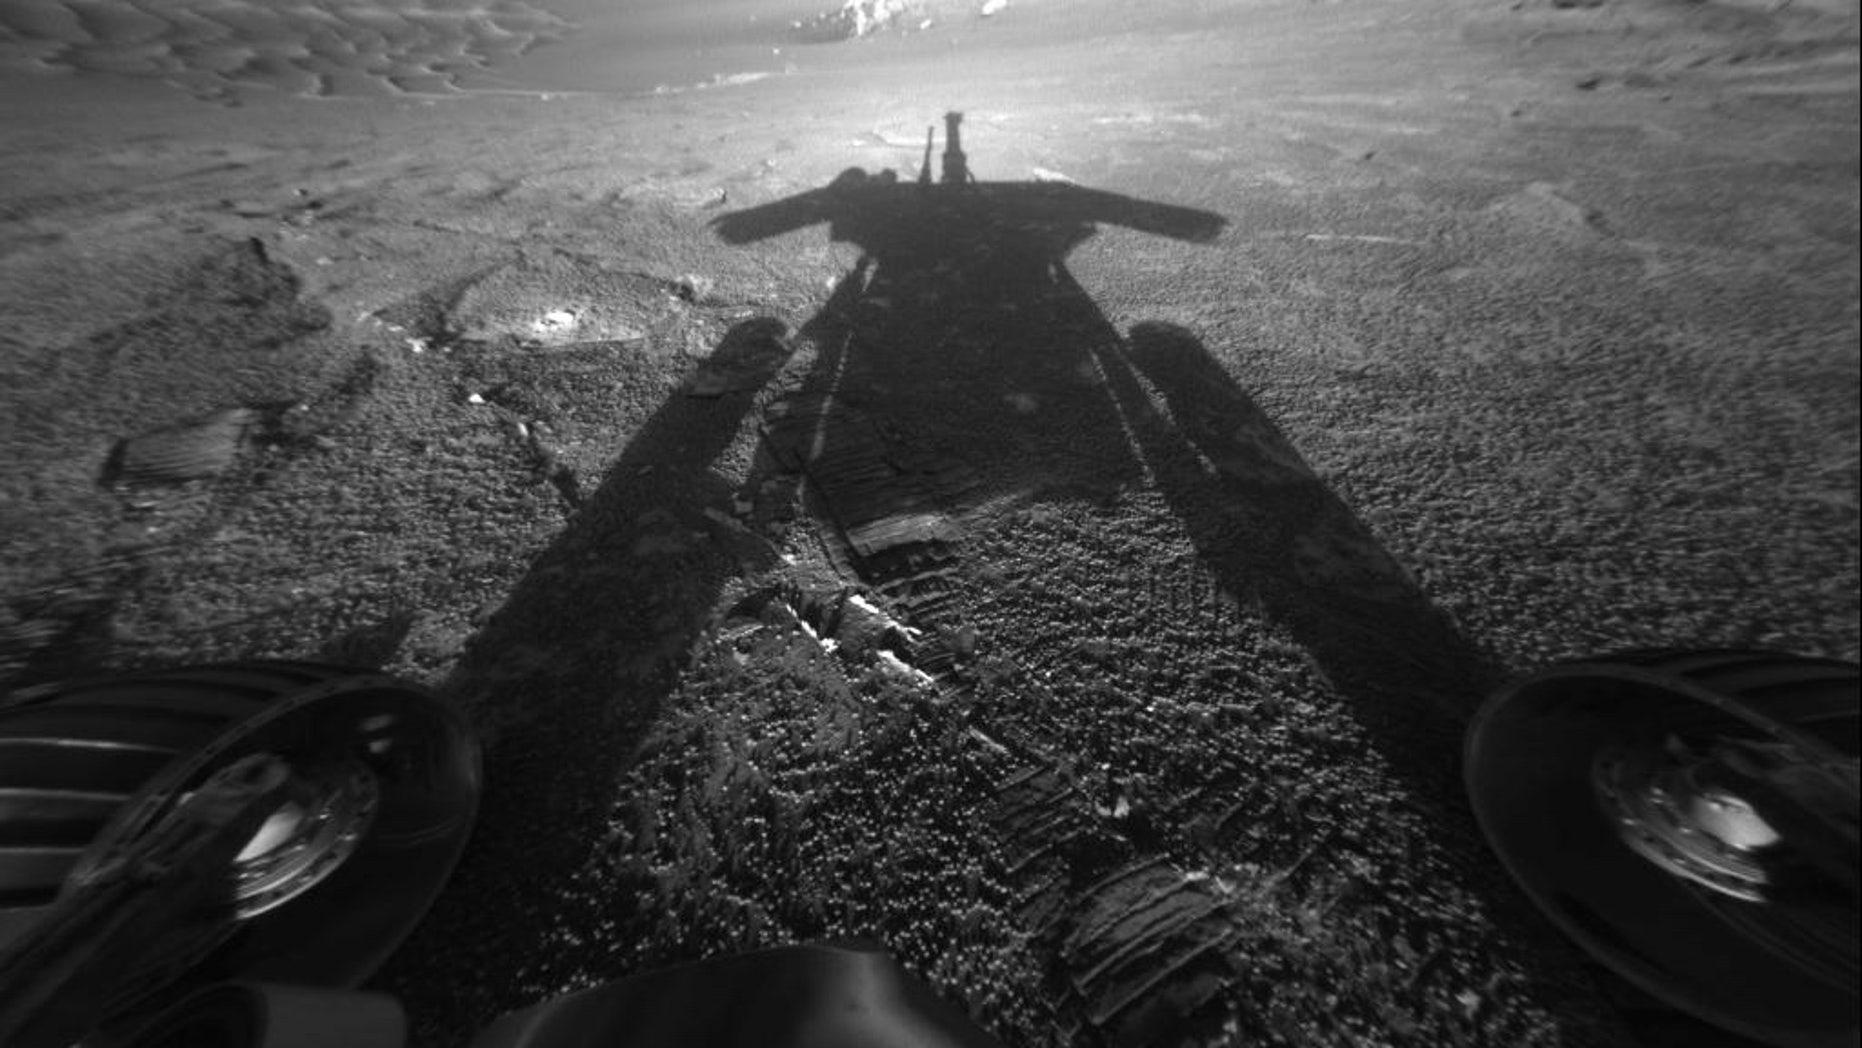 NASA's Mars rover Opportunity reveals its shadow, seen on July 26, 2004, and snapped by the rover's front hazard-avoidance camera. At the time, Opportunity was moving farther into Endurance Crater in the Meridiani Planum region of Mars.